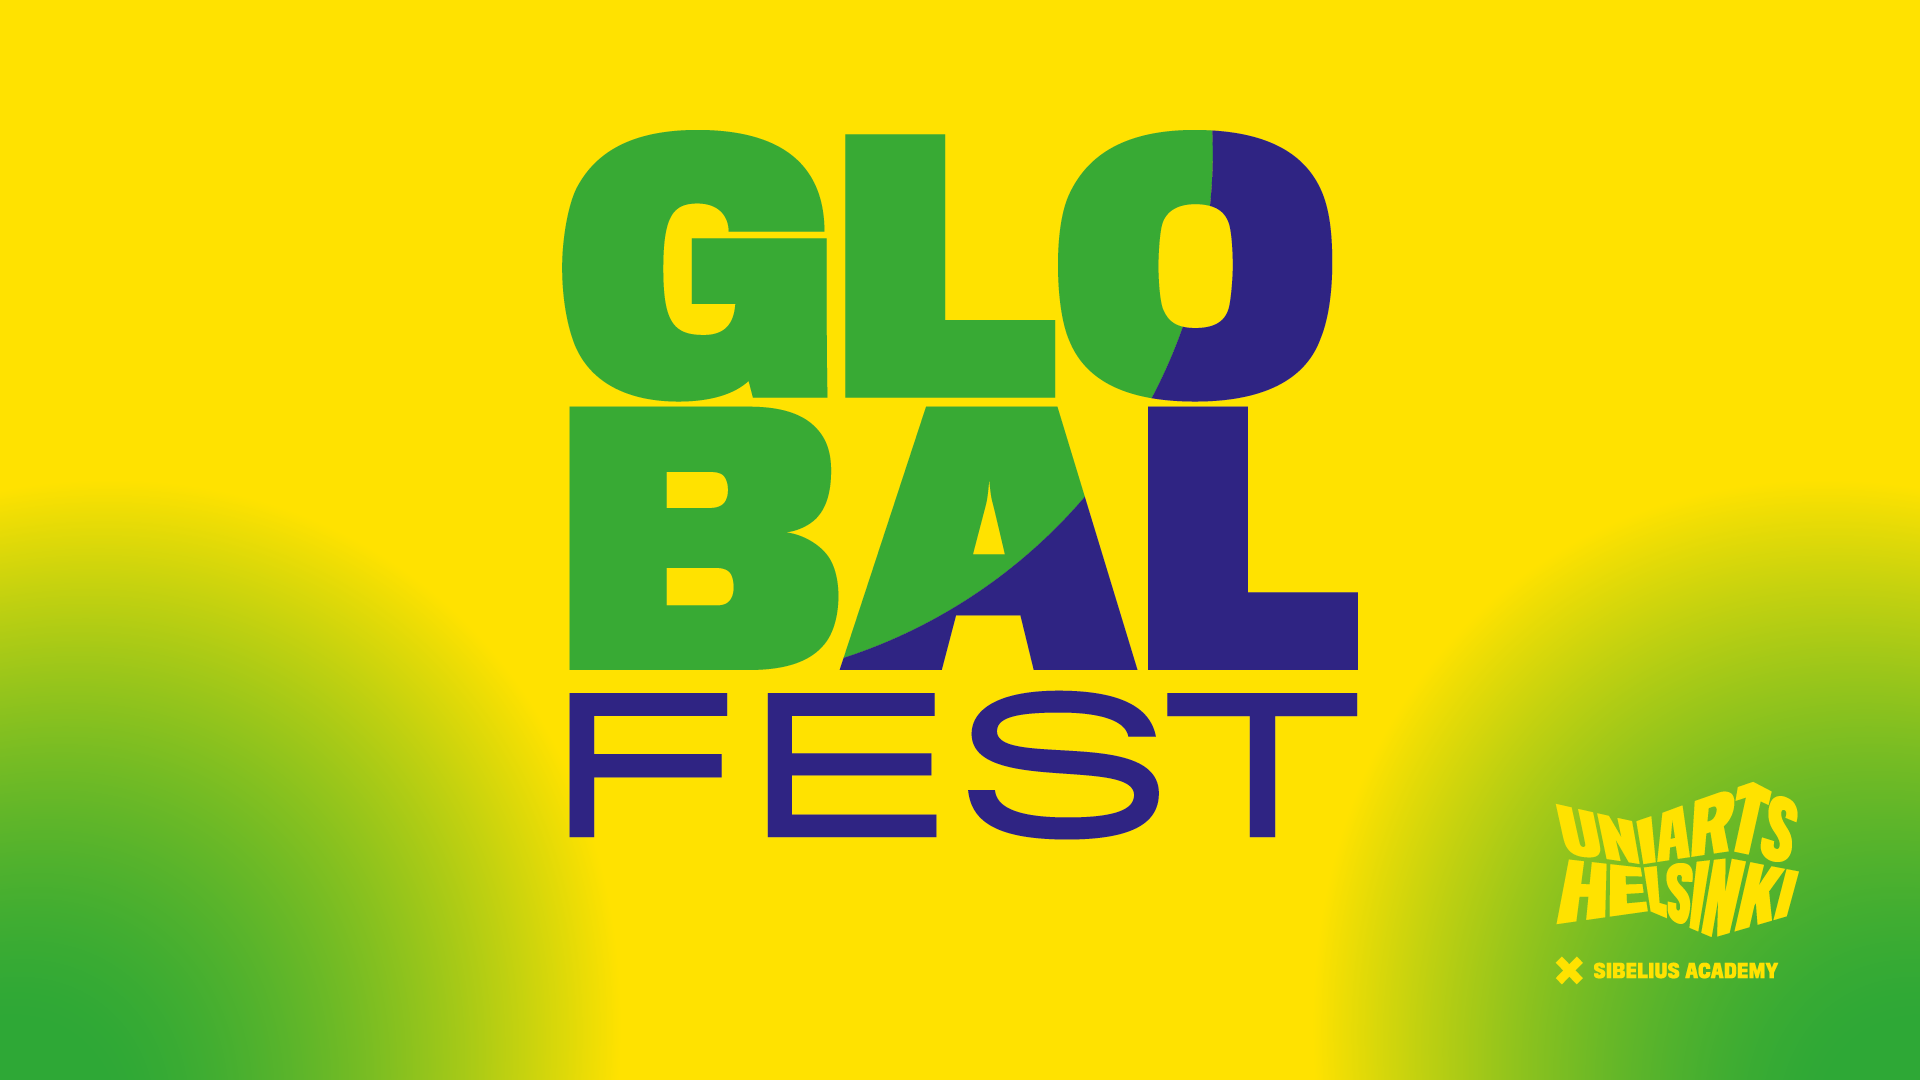 Global fest logo. ''Global fest'' text is shown at green/yellow background.